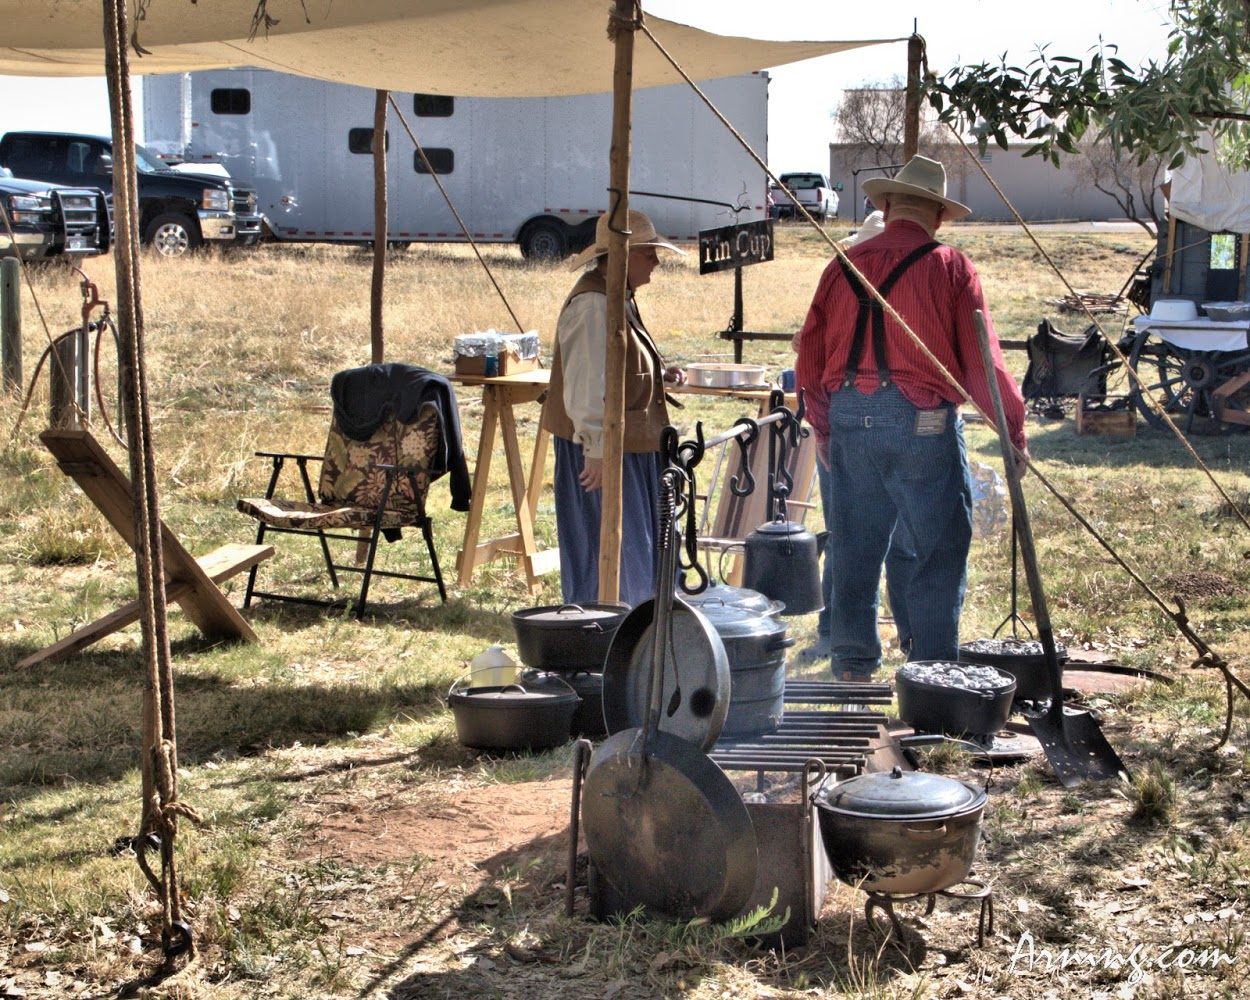 Chuck Wagon cook-off in Logan New Mexico